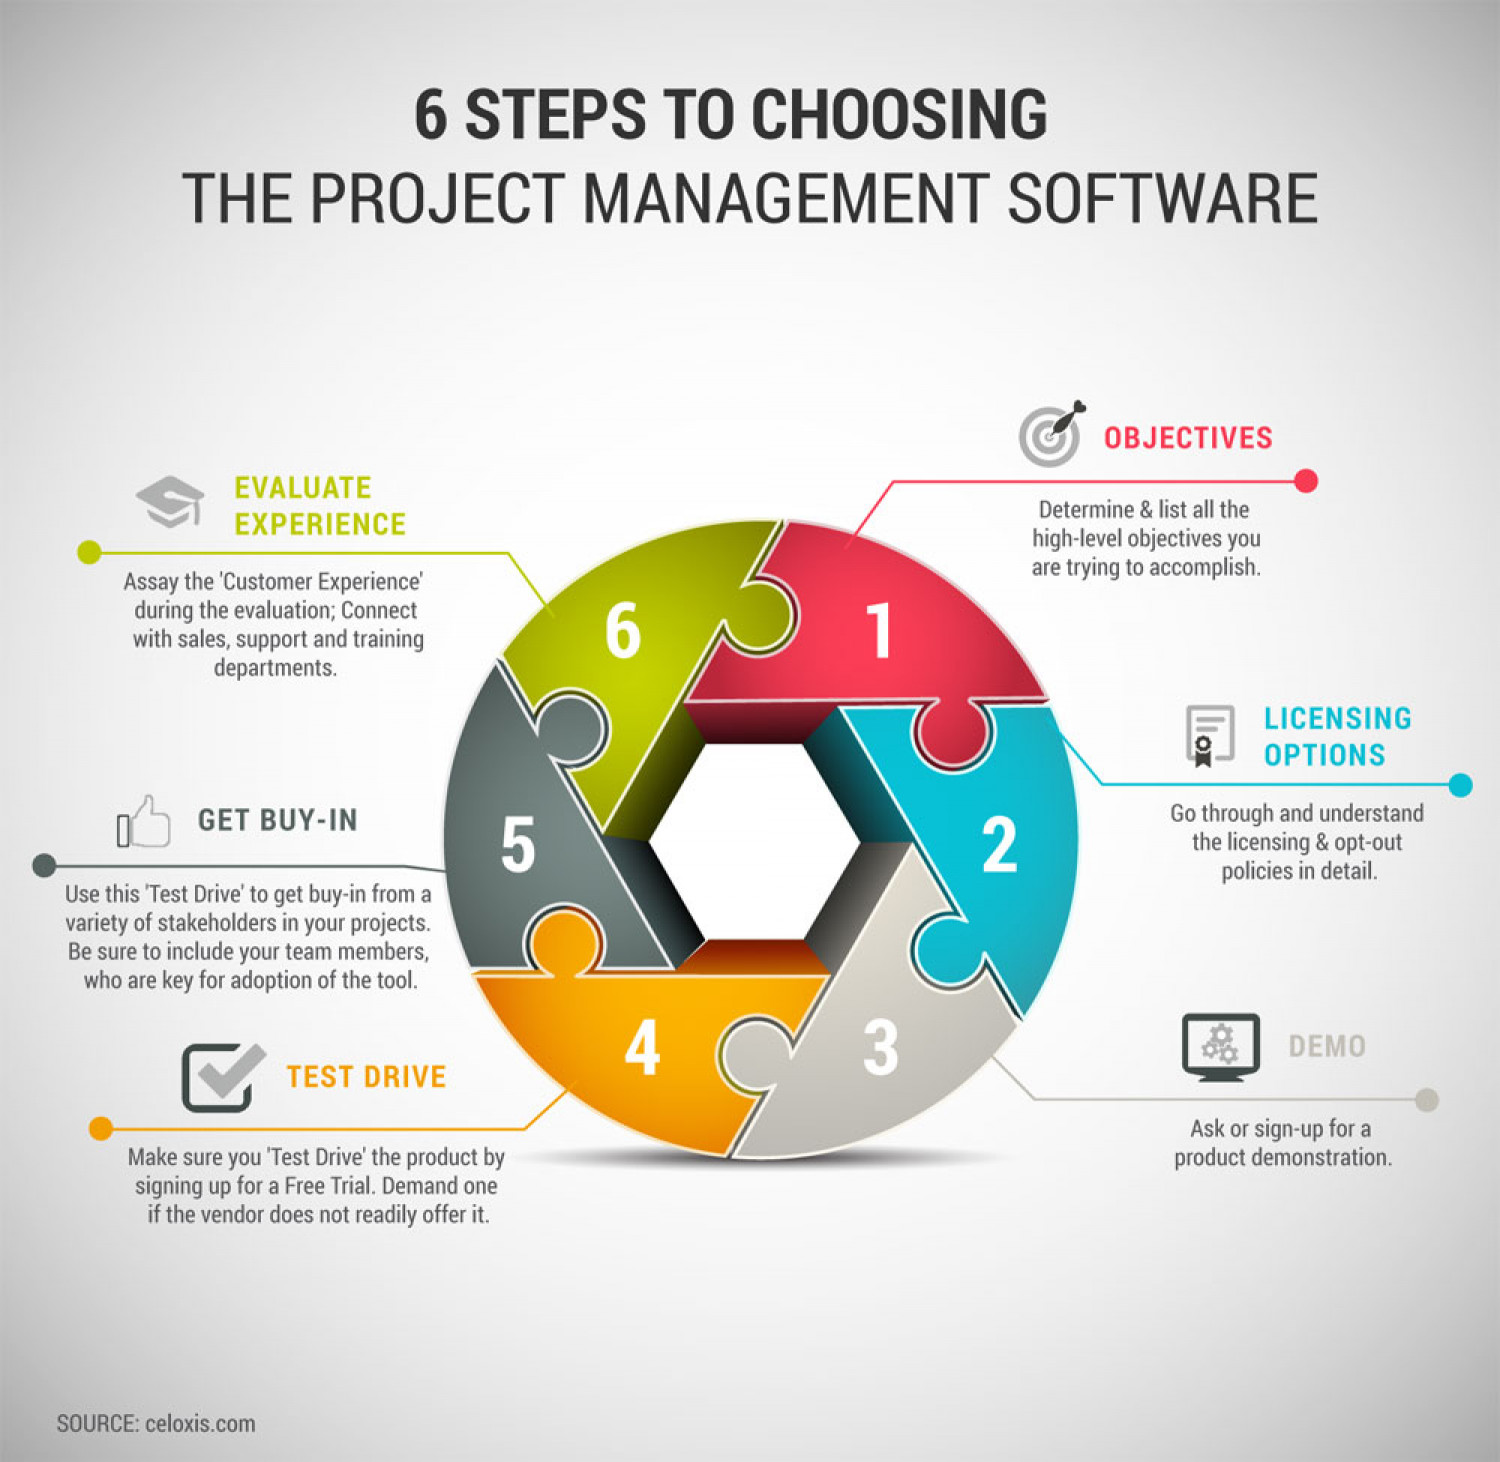 6 steps to choosing the project management software infographic